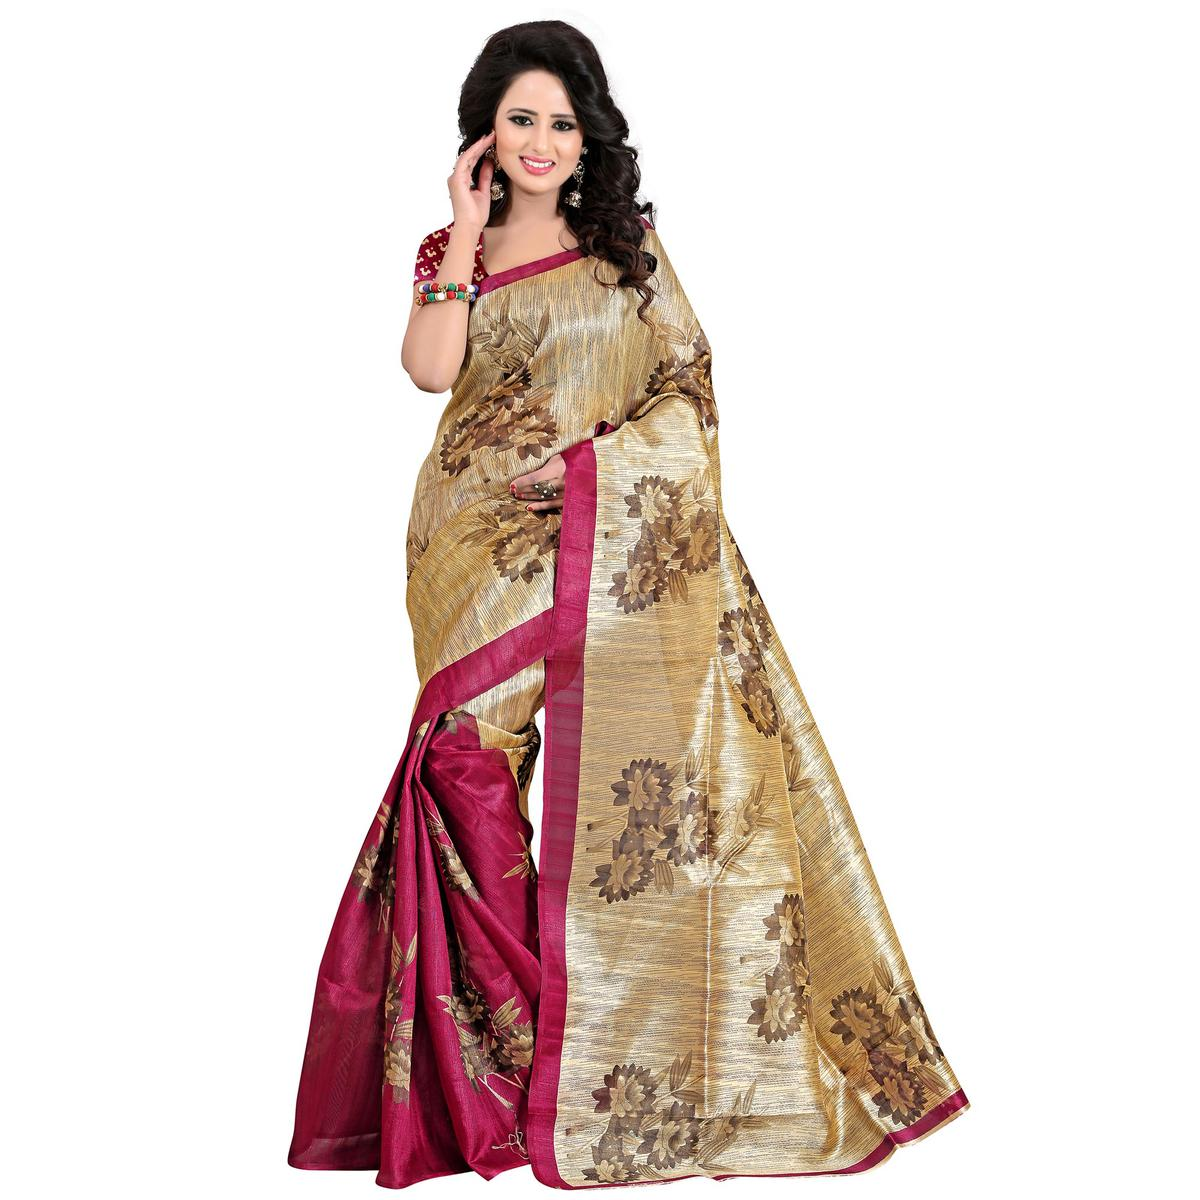 Prominent Magenta Pink - Beige Colored Casual Wear Printed Bhagalpuri Silk Saree